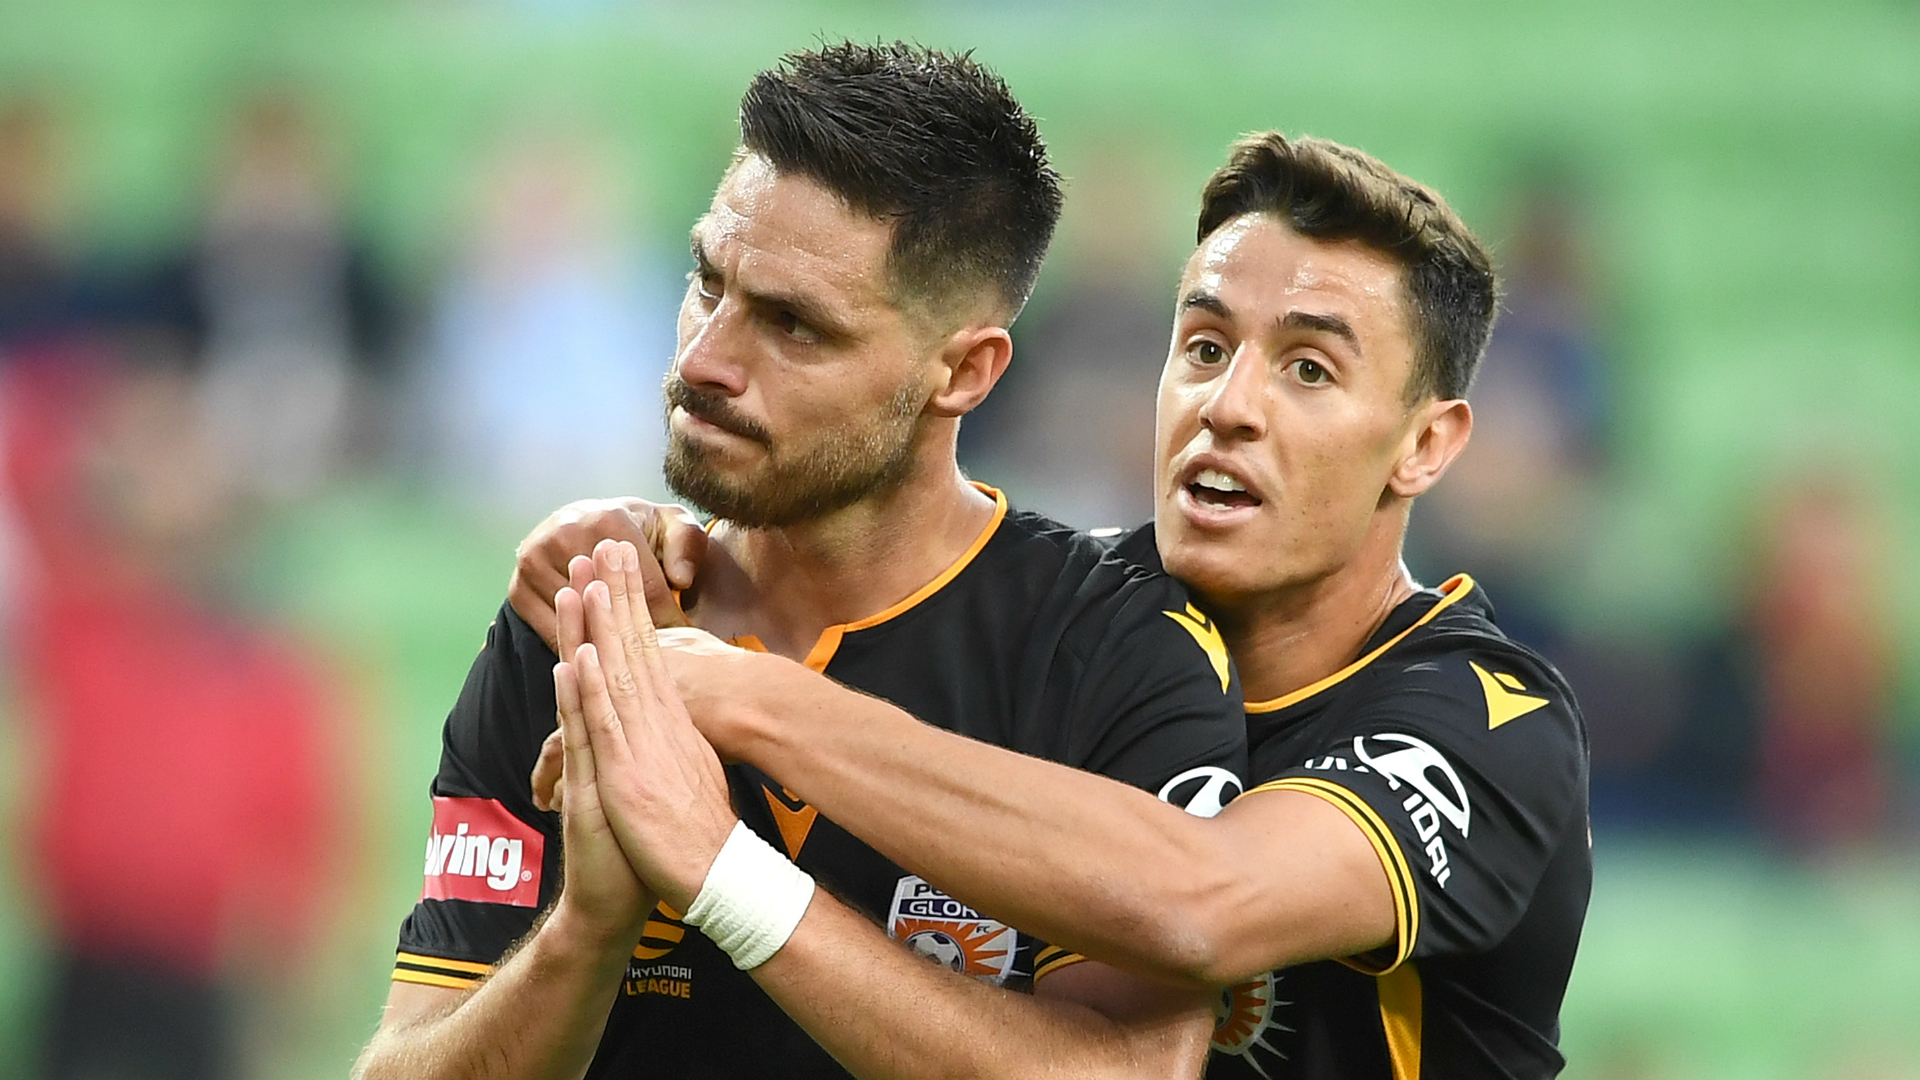 Melbourne City 0-3 Perth Glory: Fornaroli on target in A-League upset